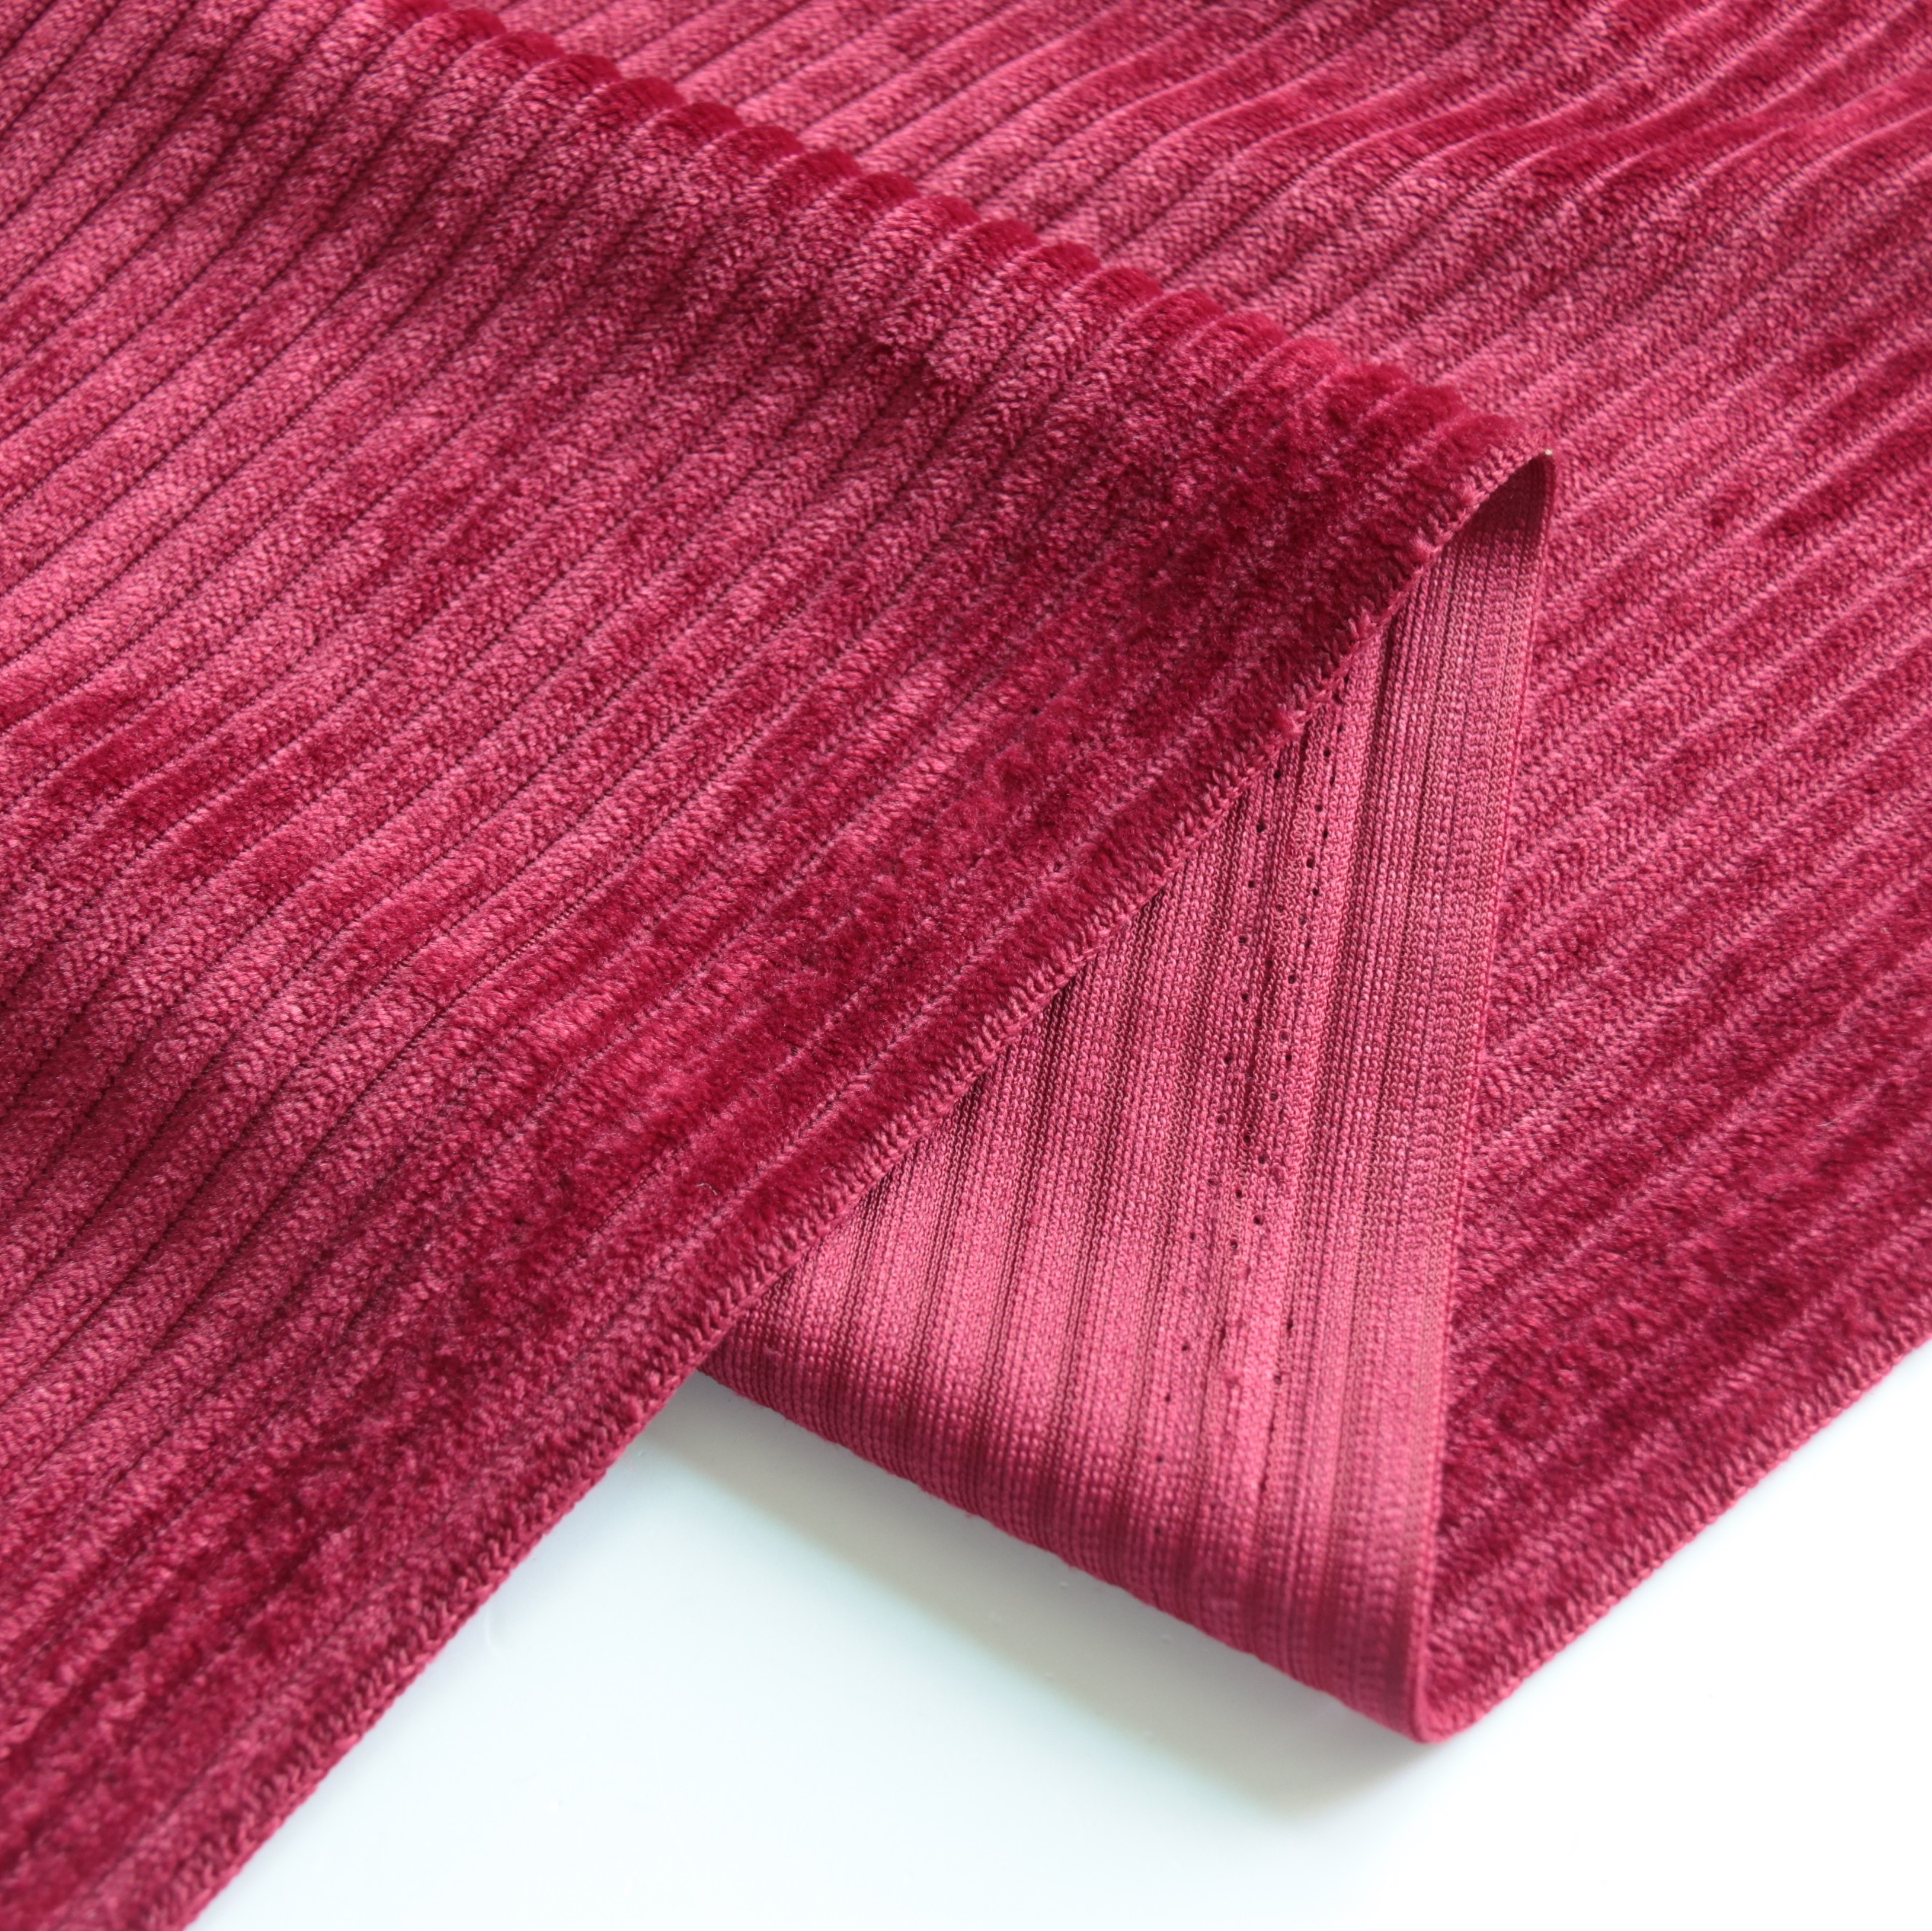 100% polyester jacquard 200GSM stripe knitted cotton corduroy  for clothes and sofa fabrics